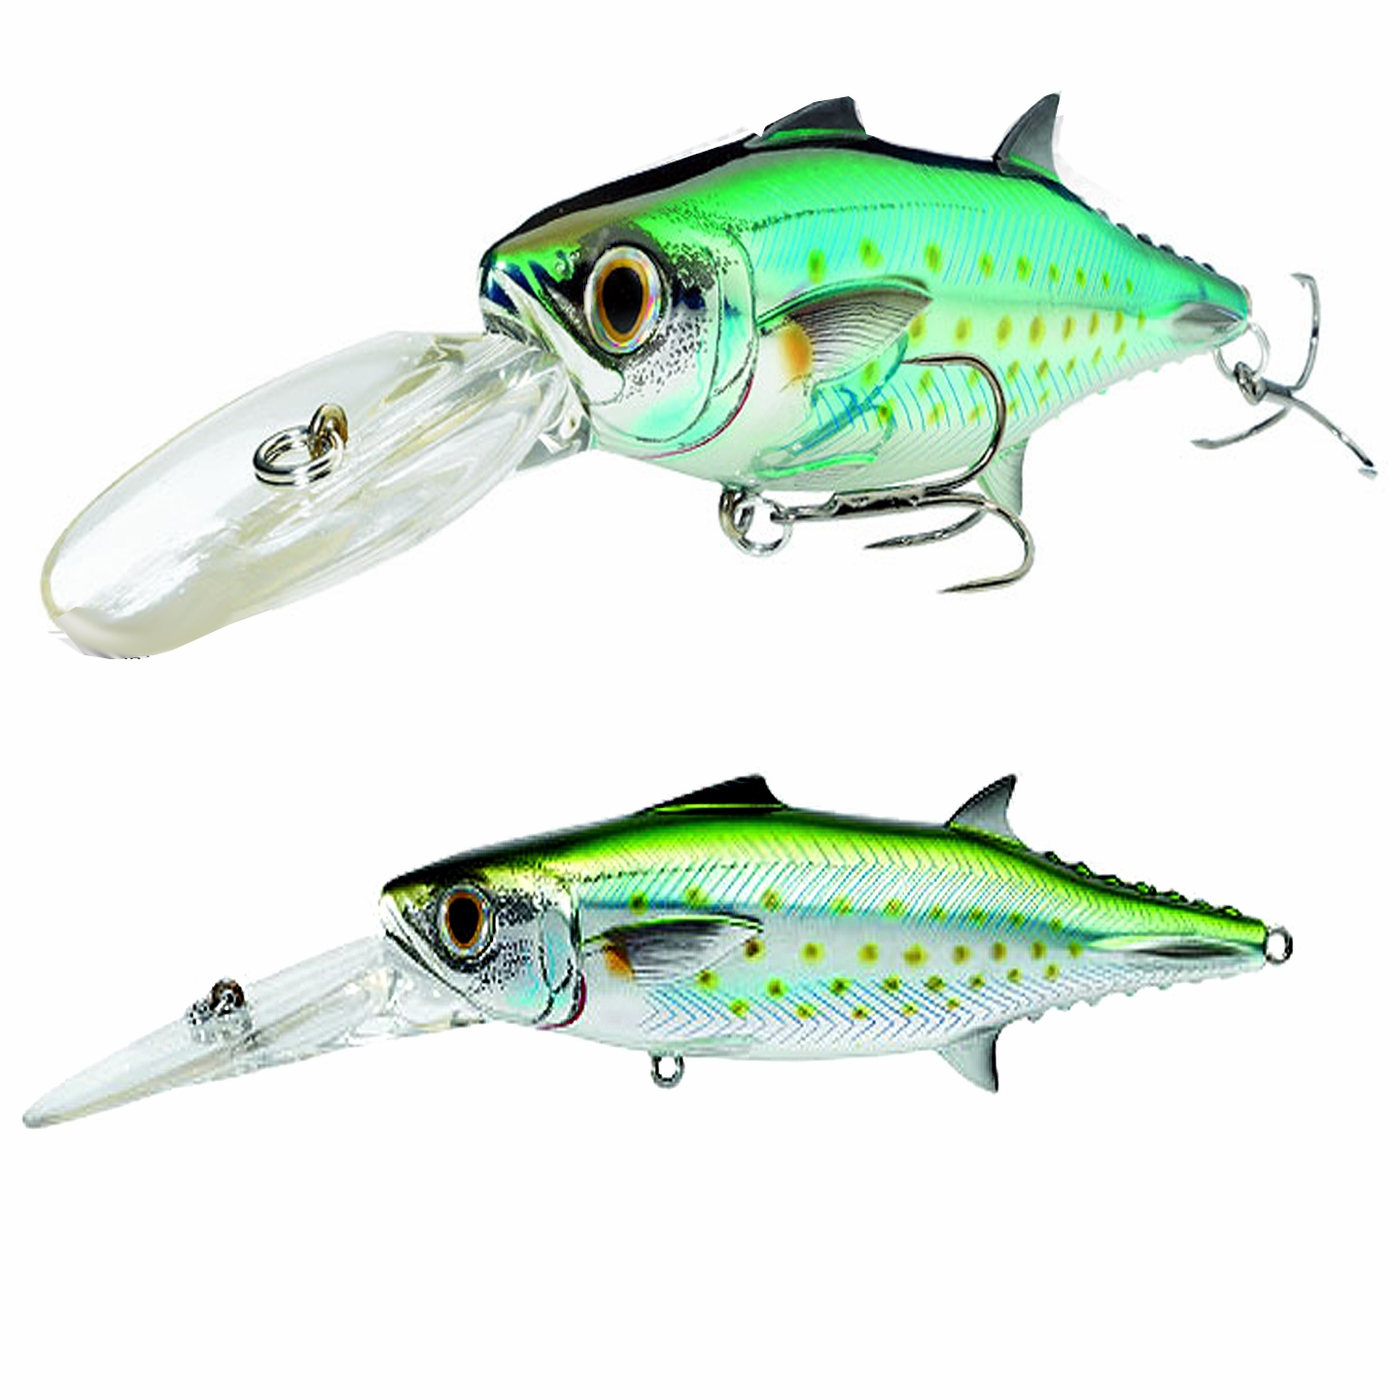 Livetarget spanish mackerel trolling bait lures tackledirect for Live fishing bait near me